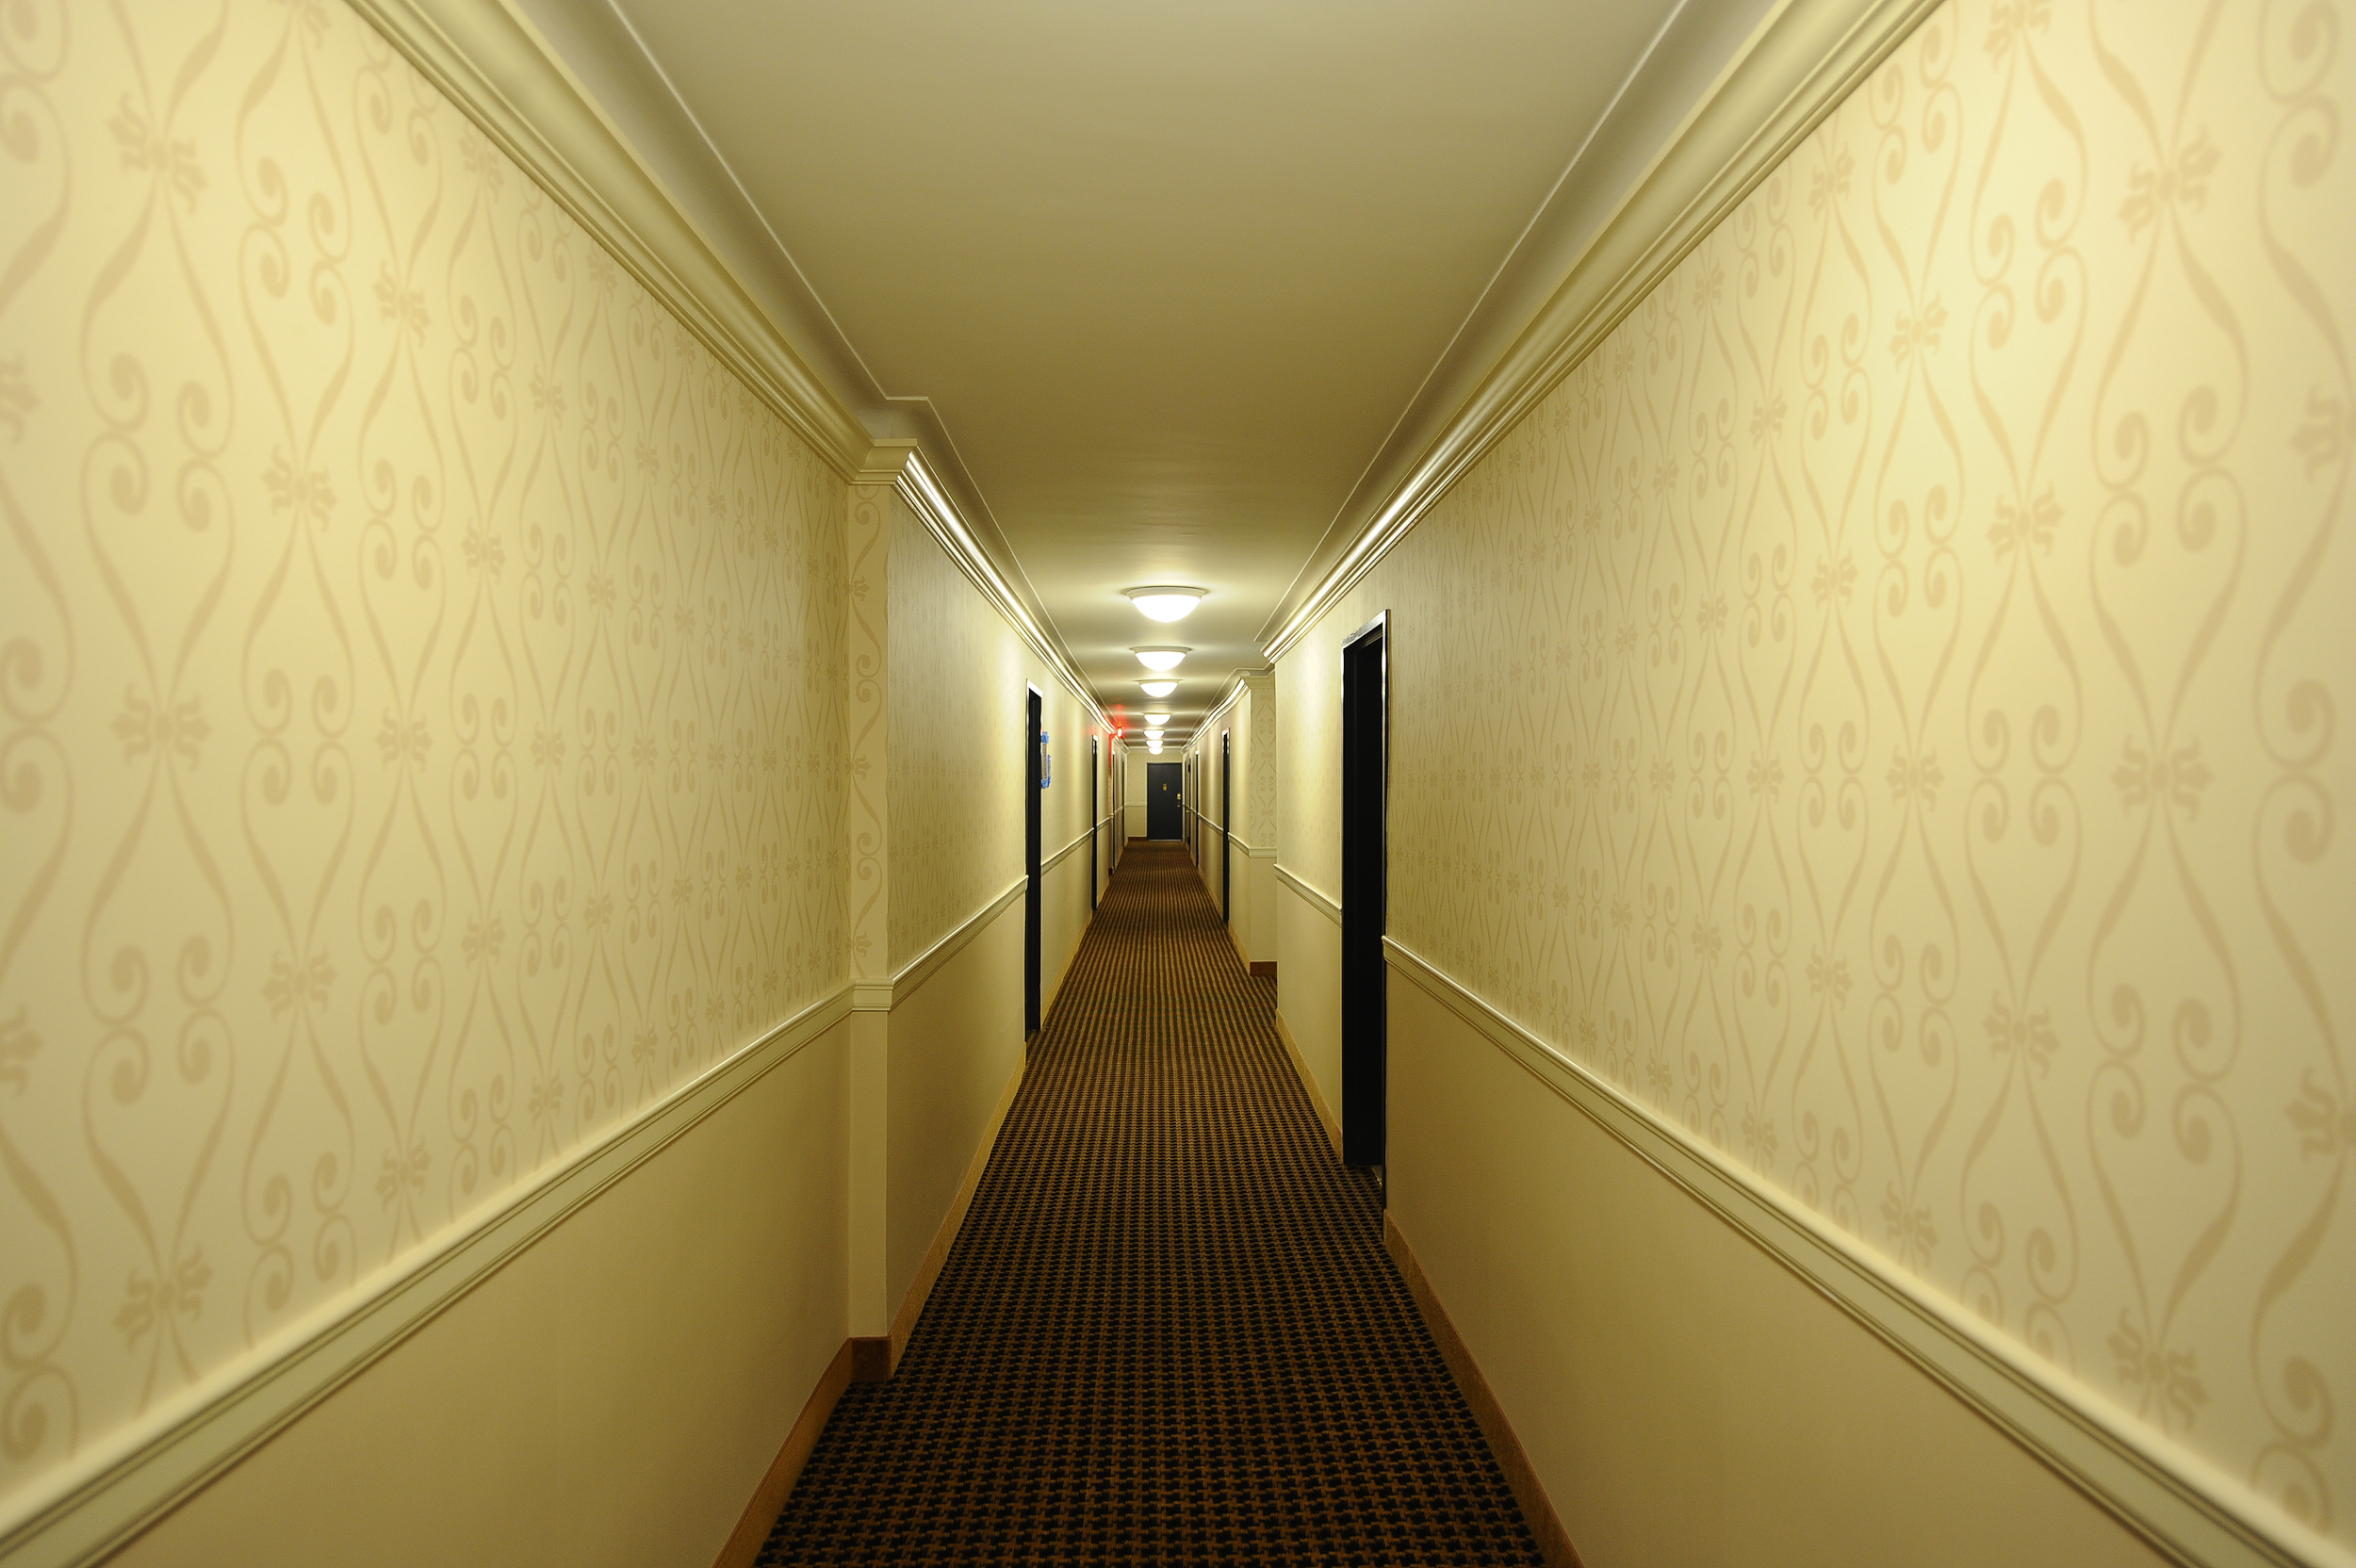 Hallways on Studio Apartment Floor Plans